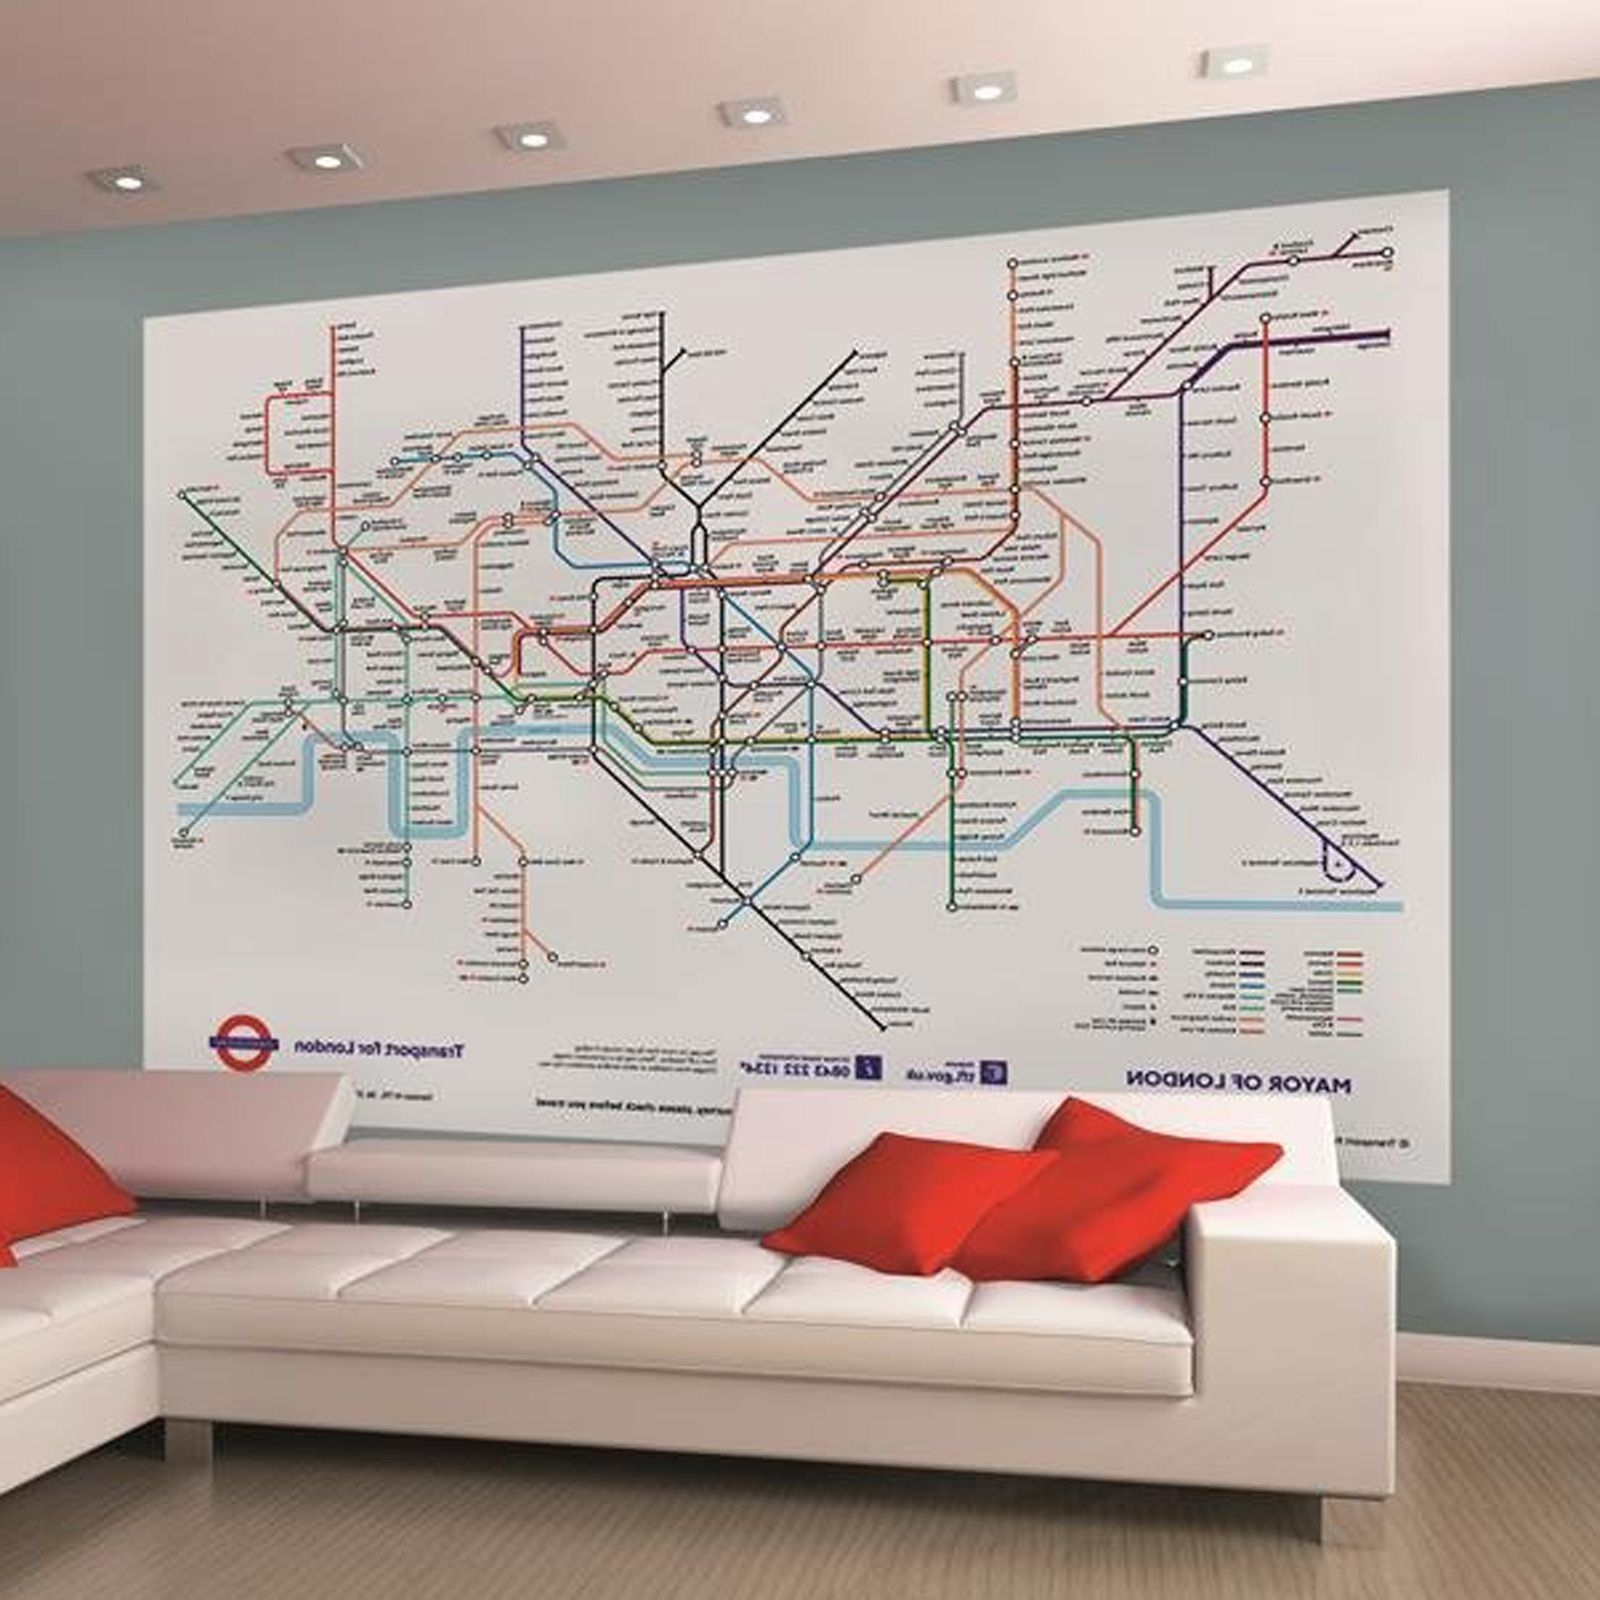 London Underground Tube Map Wallpaper Wall Mural 232M X 1 For Popular Tube Map Wall Art (View 5 of 20)